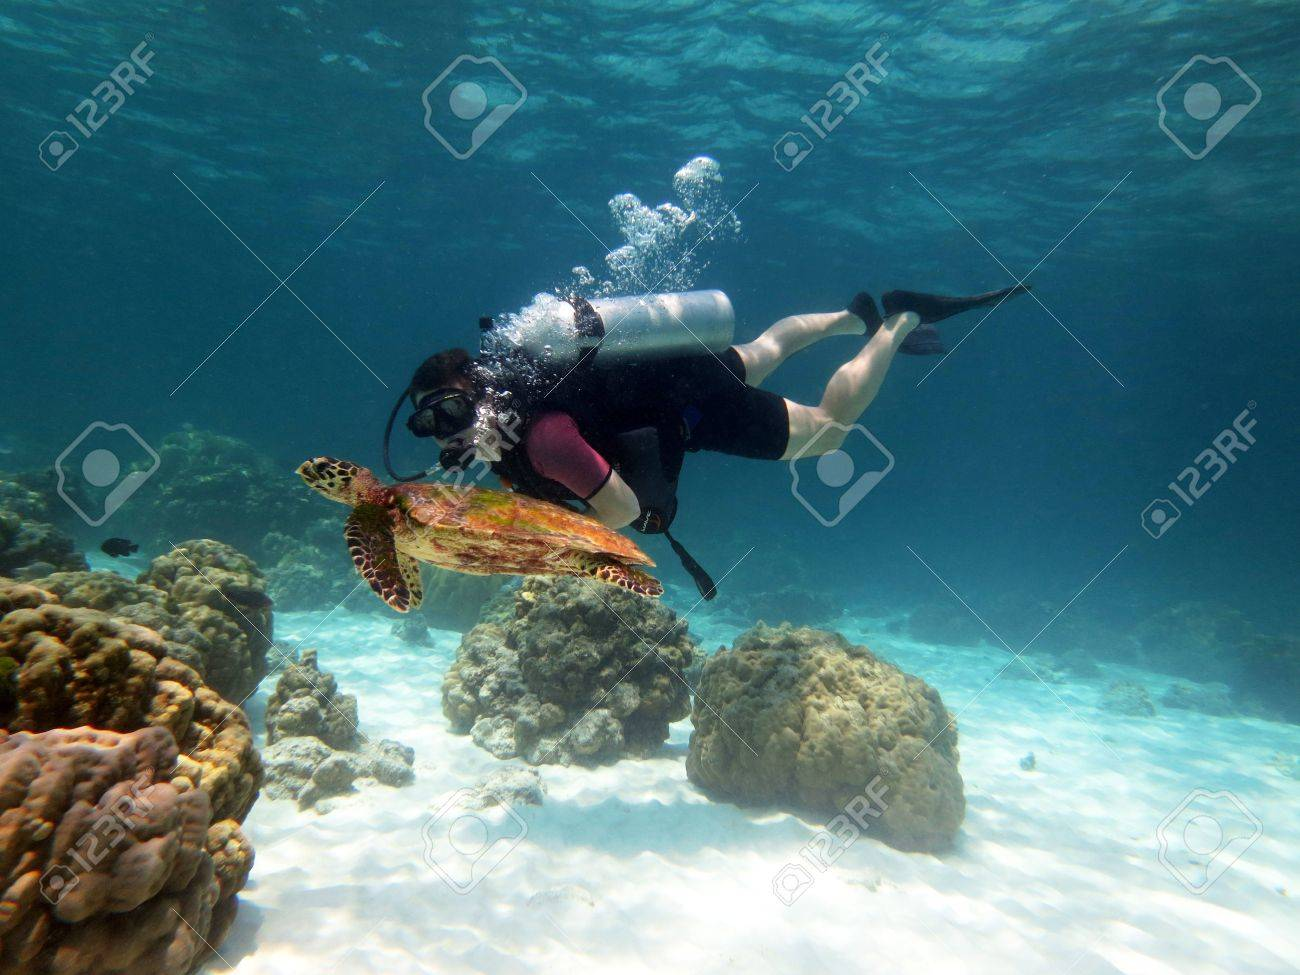 Young Man Scuba Diver between Water Surface near a turtle - 19204176